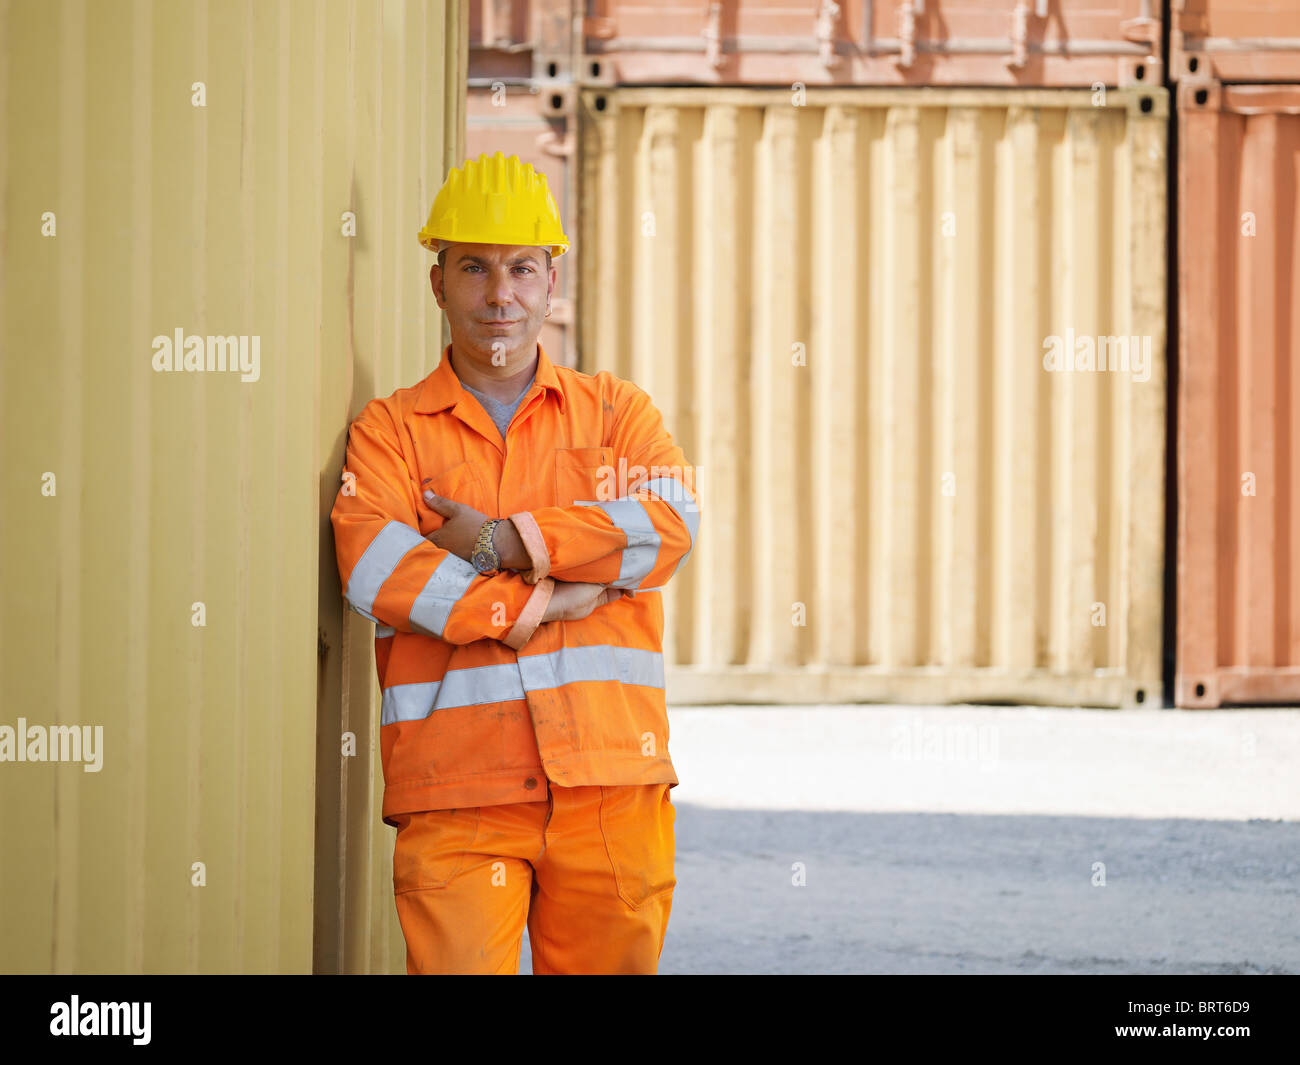 portrait of mid adult worker standing near cargo containers and looking at camera. Horizontal shape, front view, - Stock Image